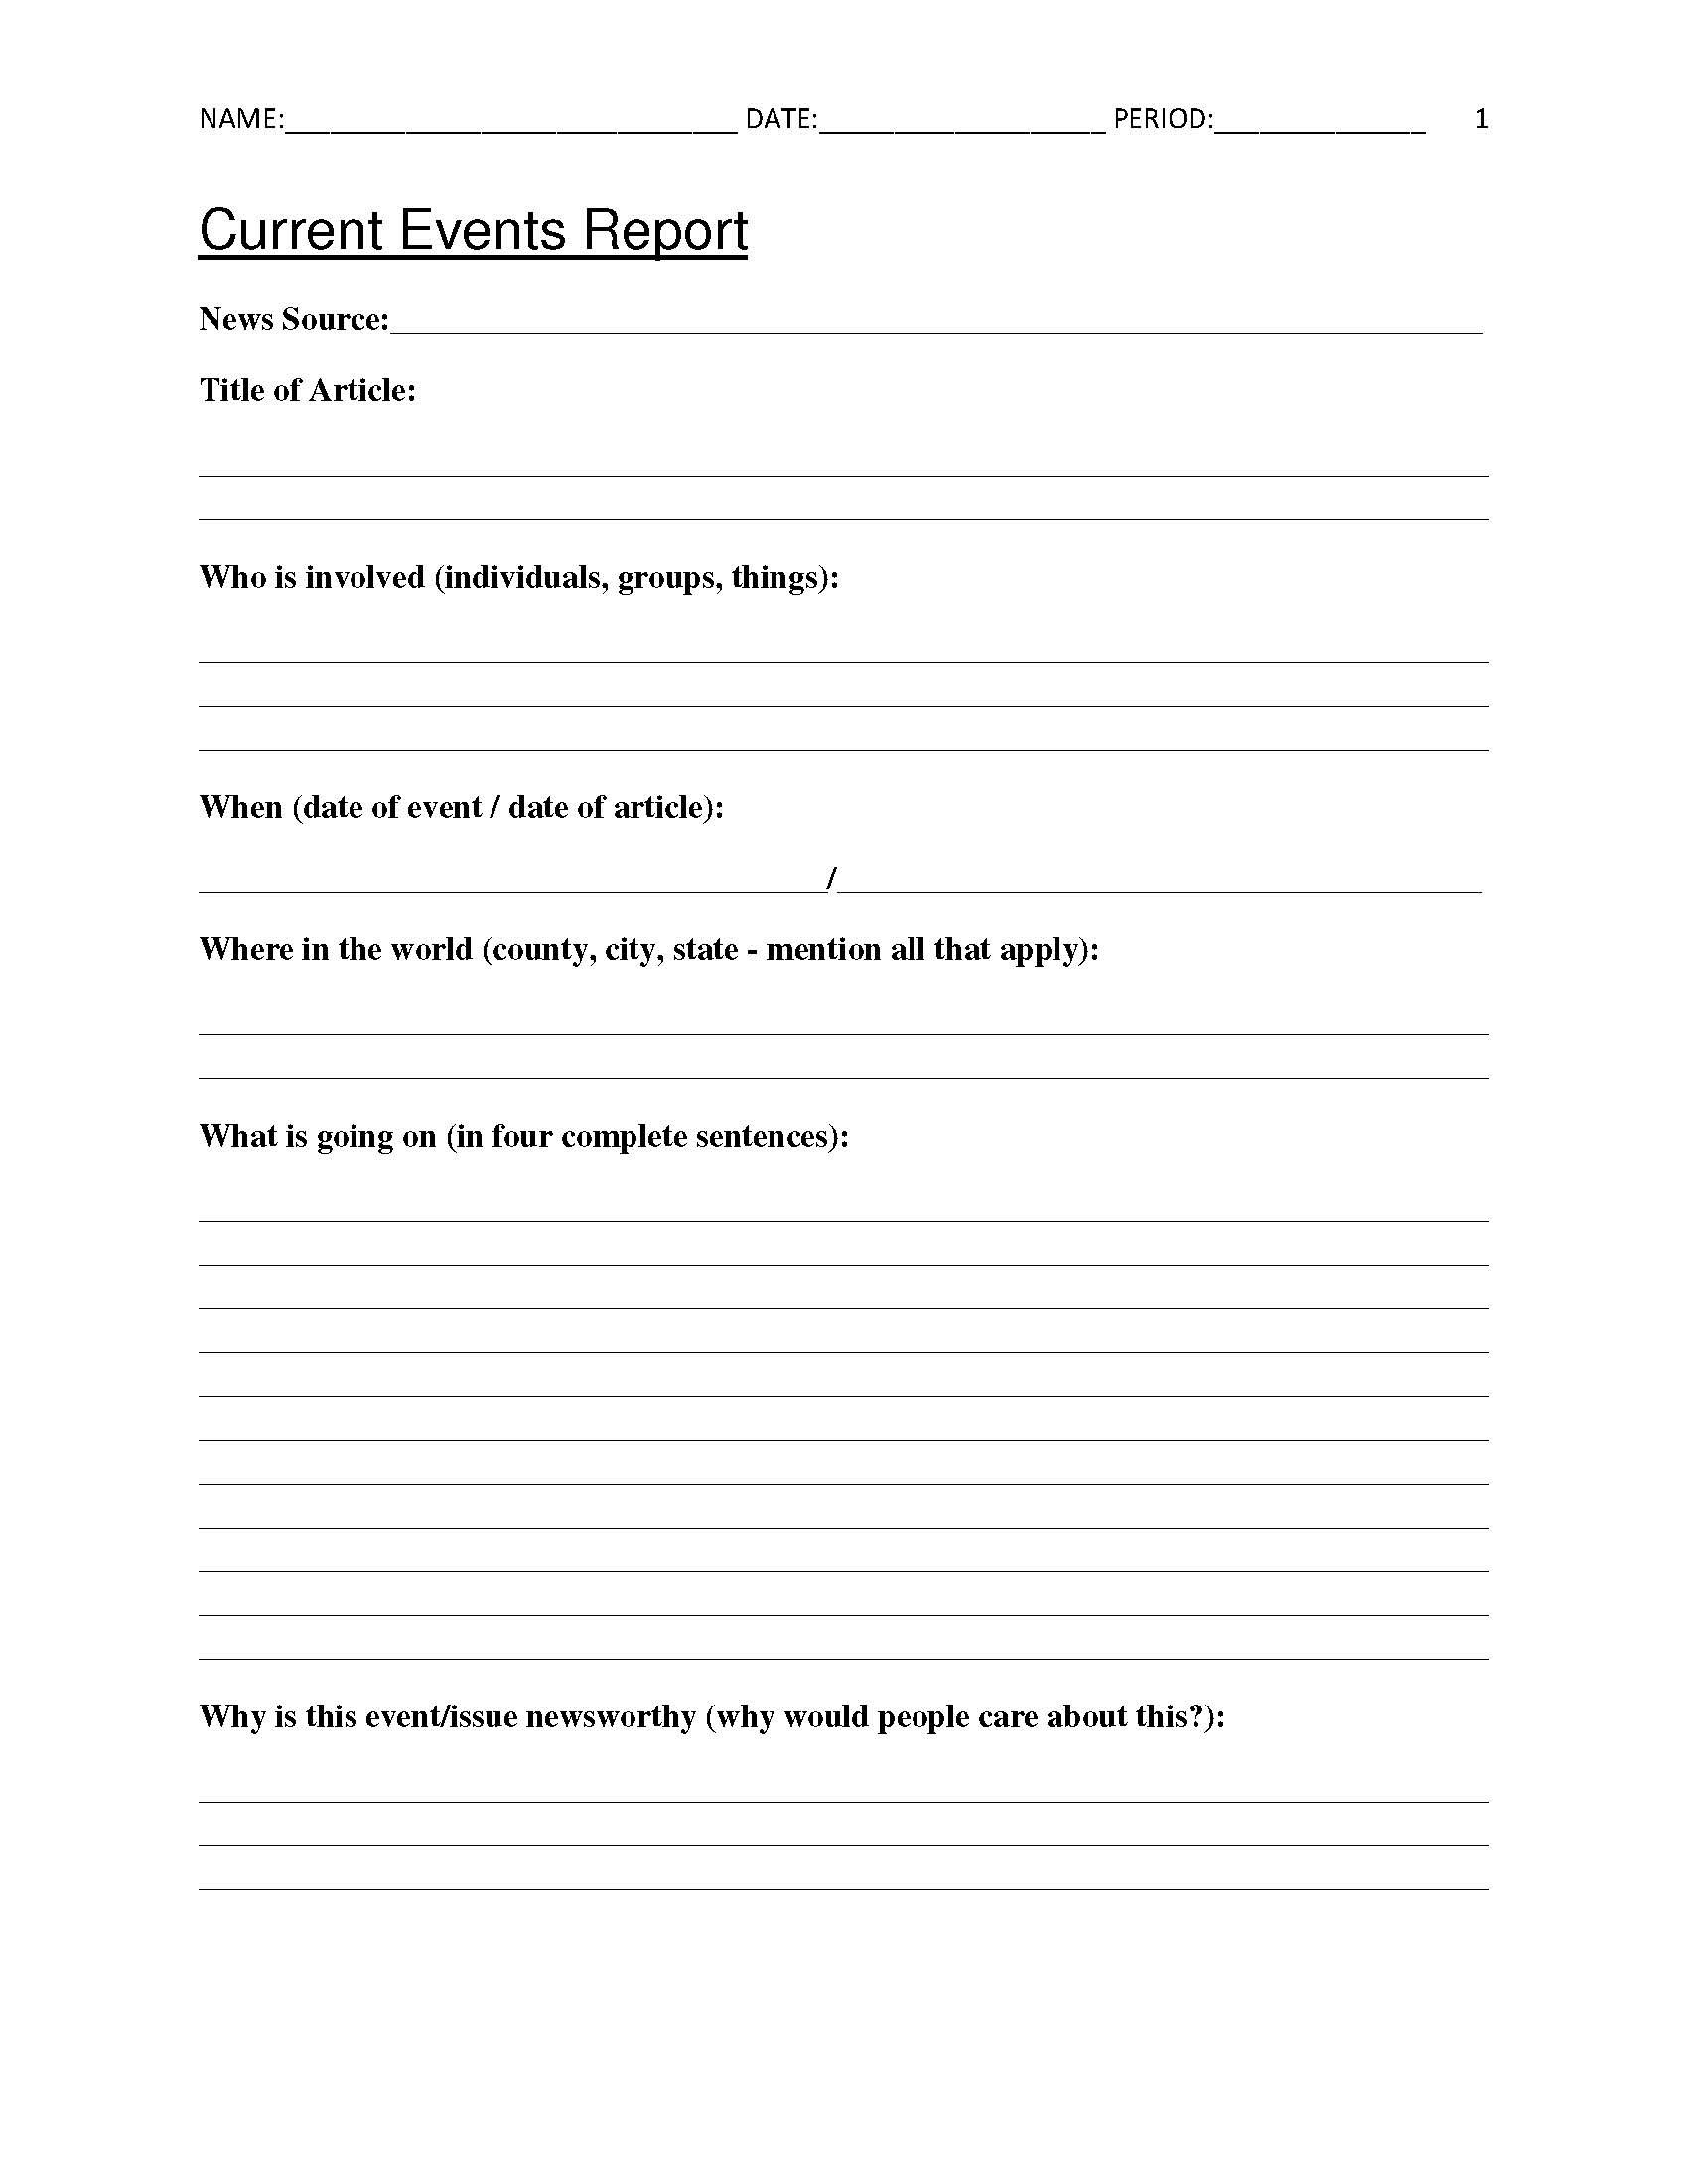 Free Current Events Report Worksheet For Classroom Teachers   Current Events Printable Worksheet